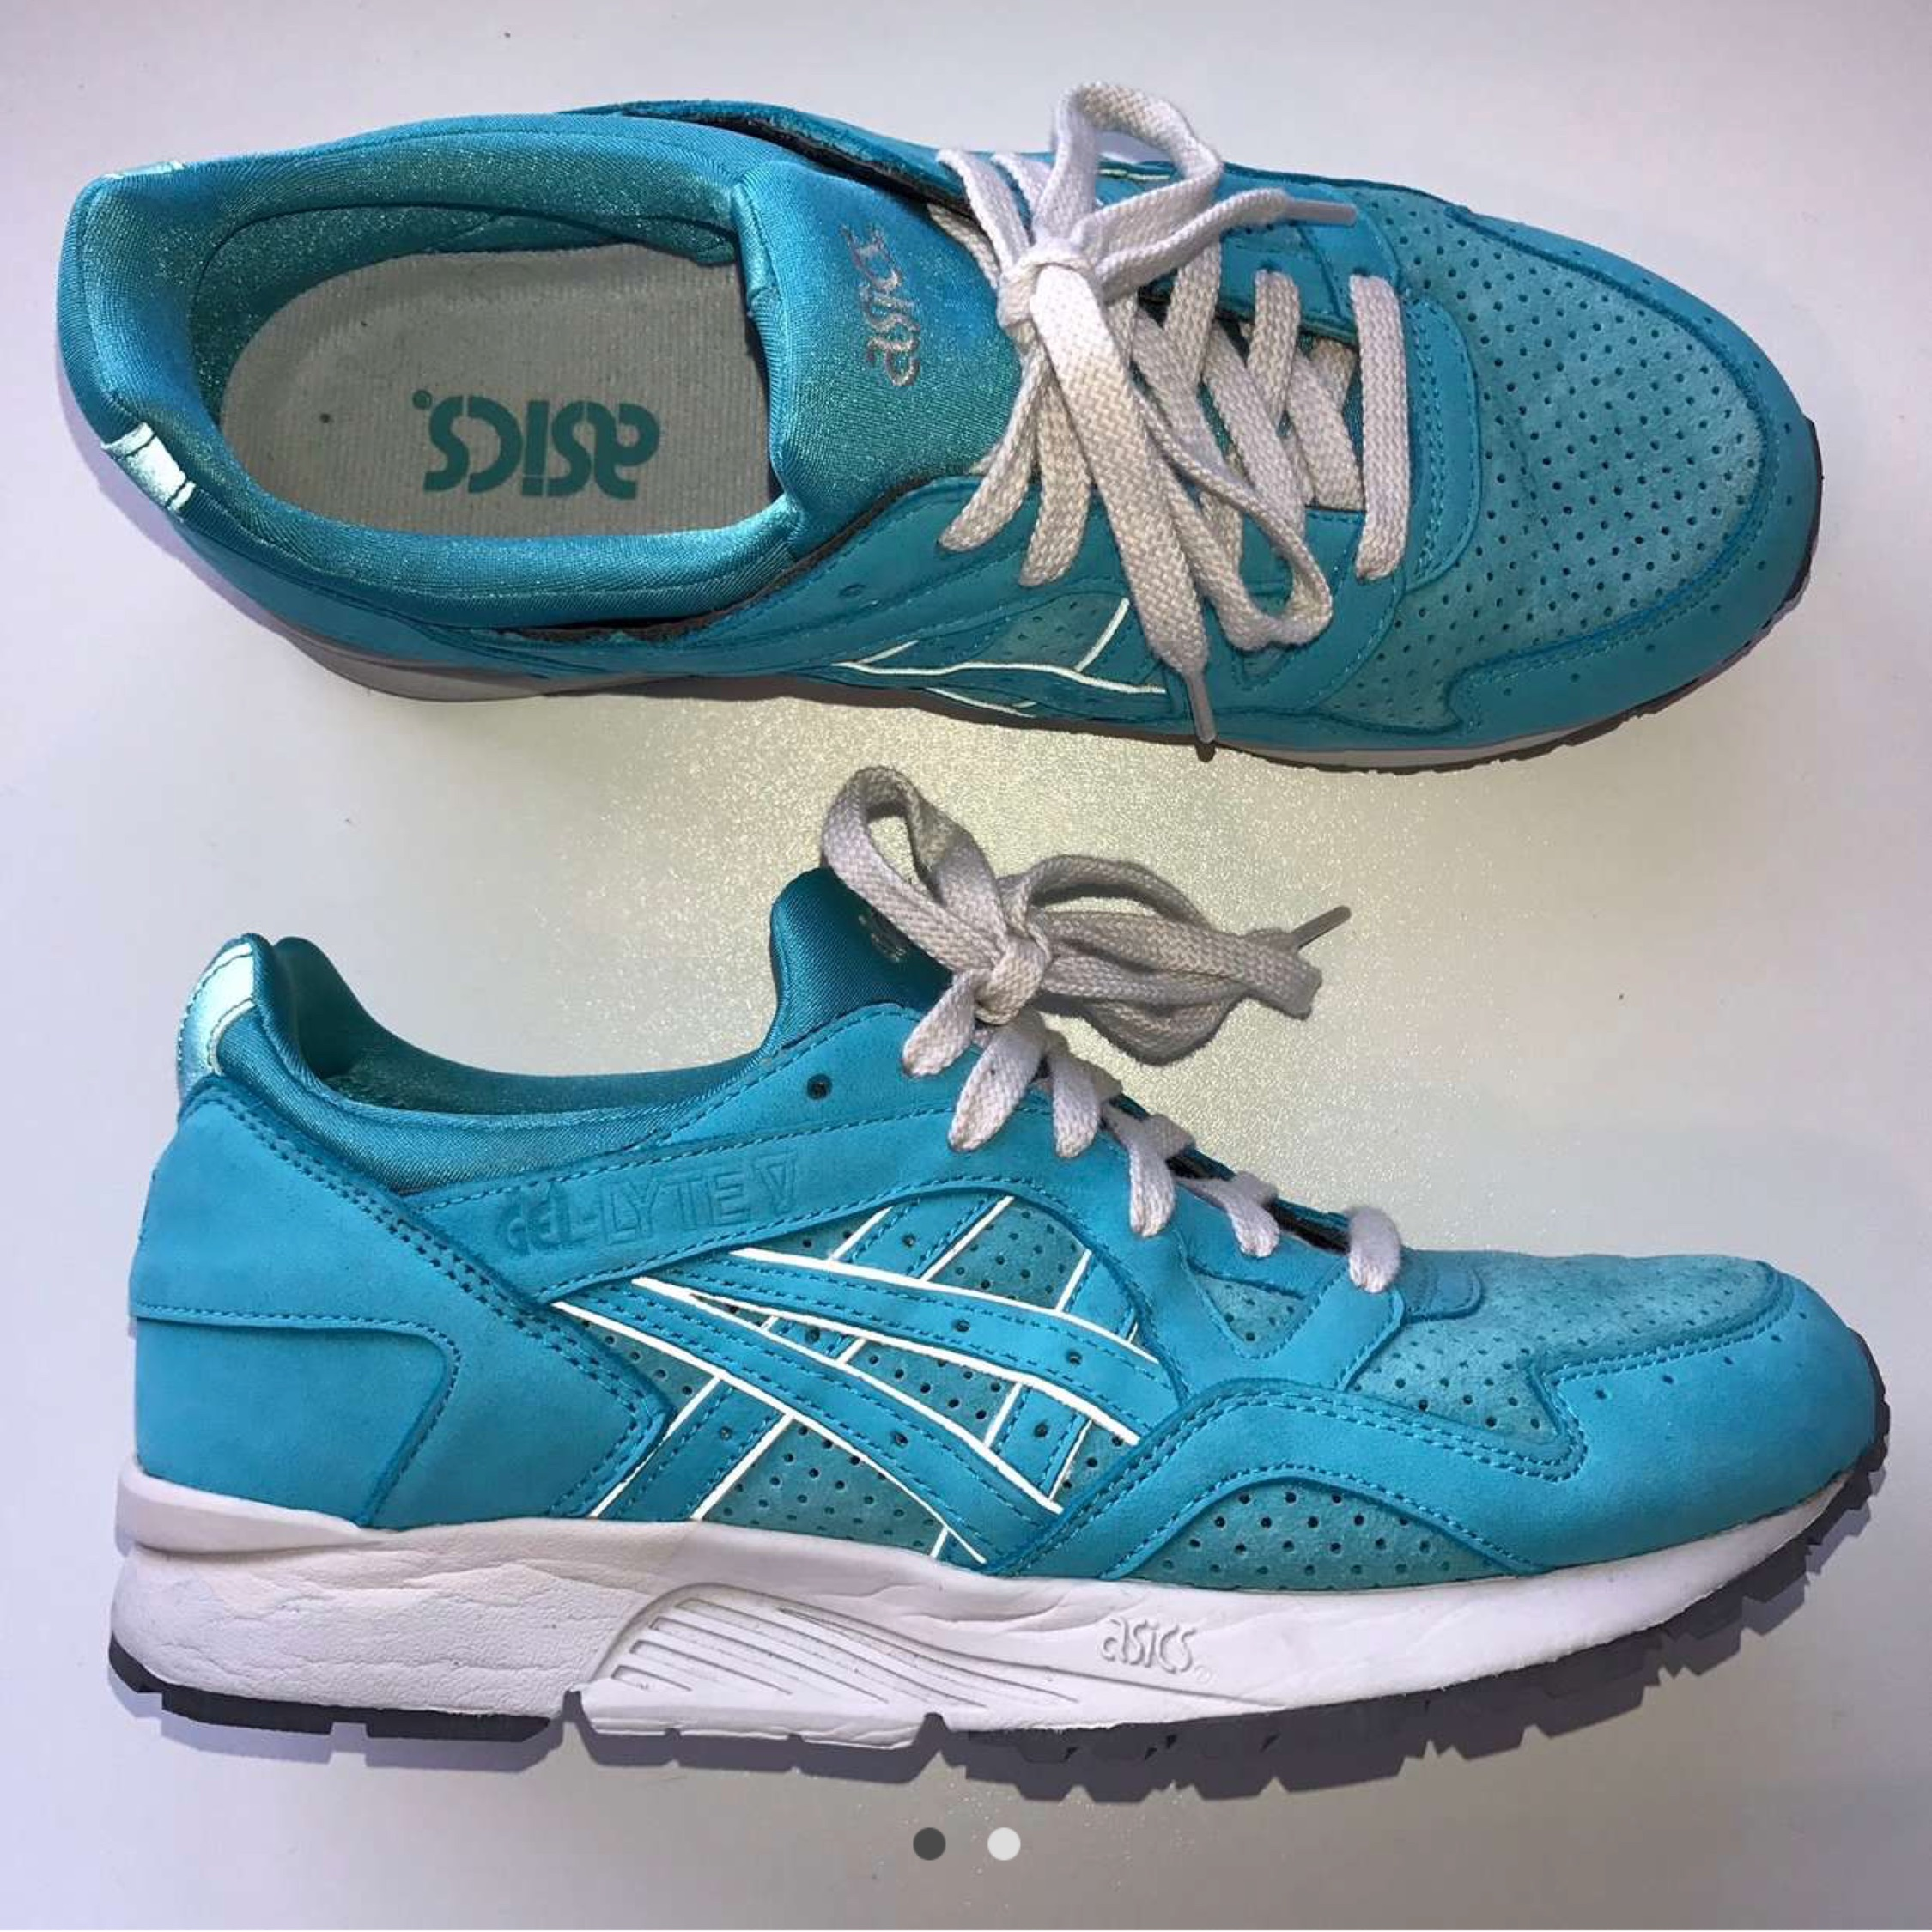 superior quality 119af 0df74 Ronnie Fieg X Asics Gel Lyte V Cove